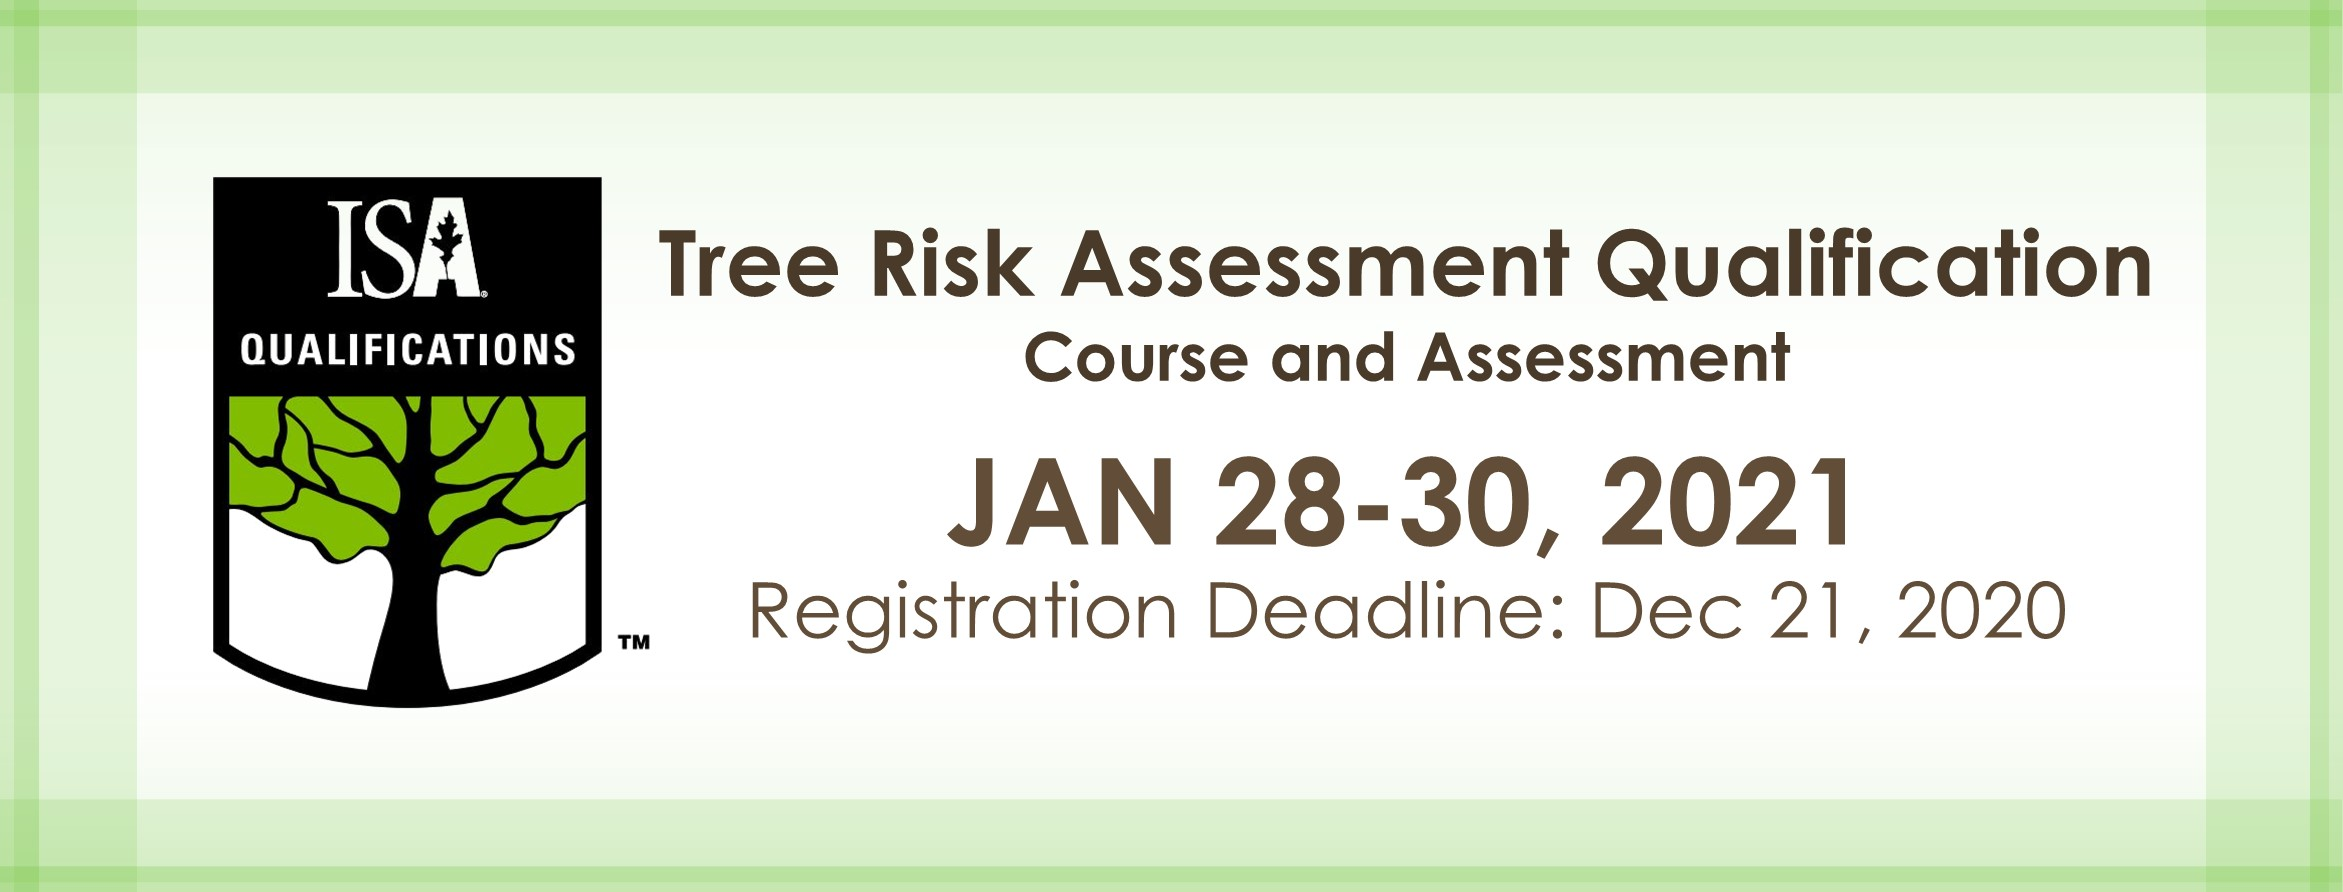 Tree Risk Assessment Qualification course and assessment at Jan 28-30